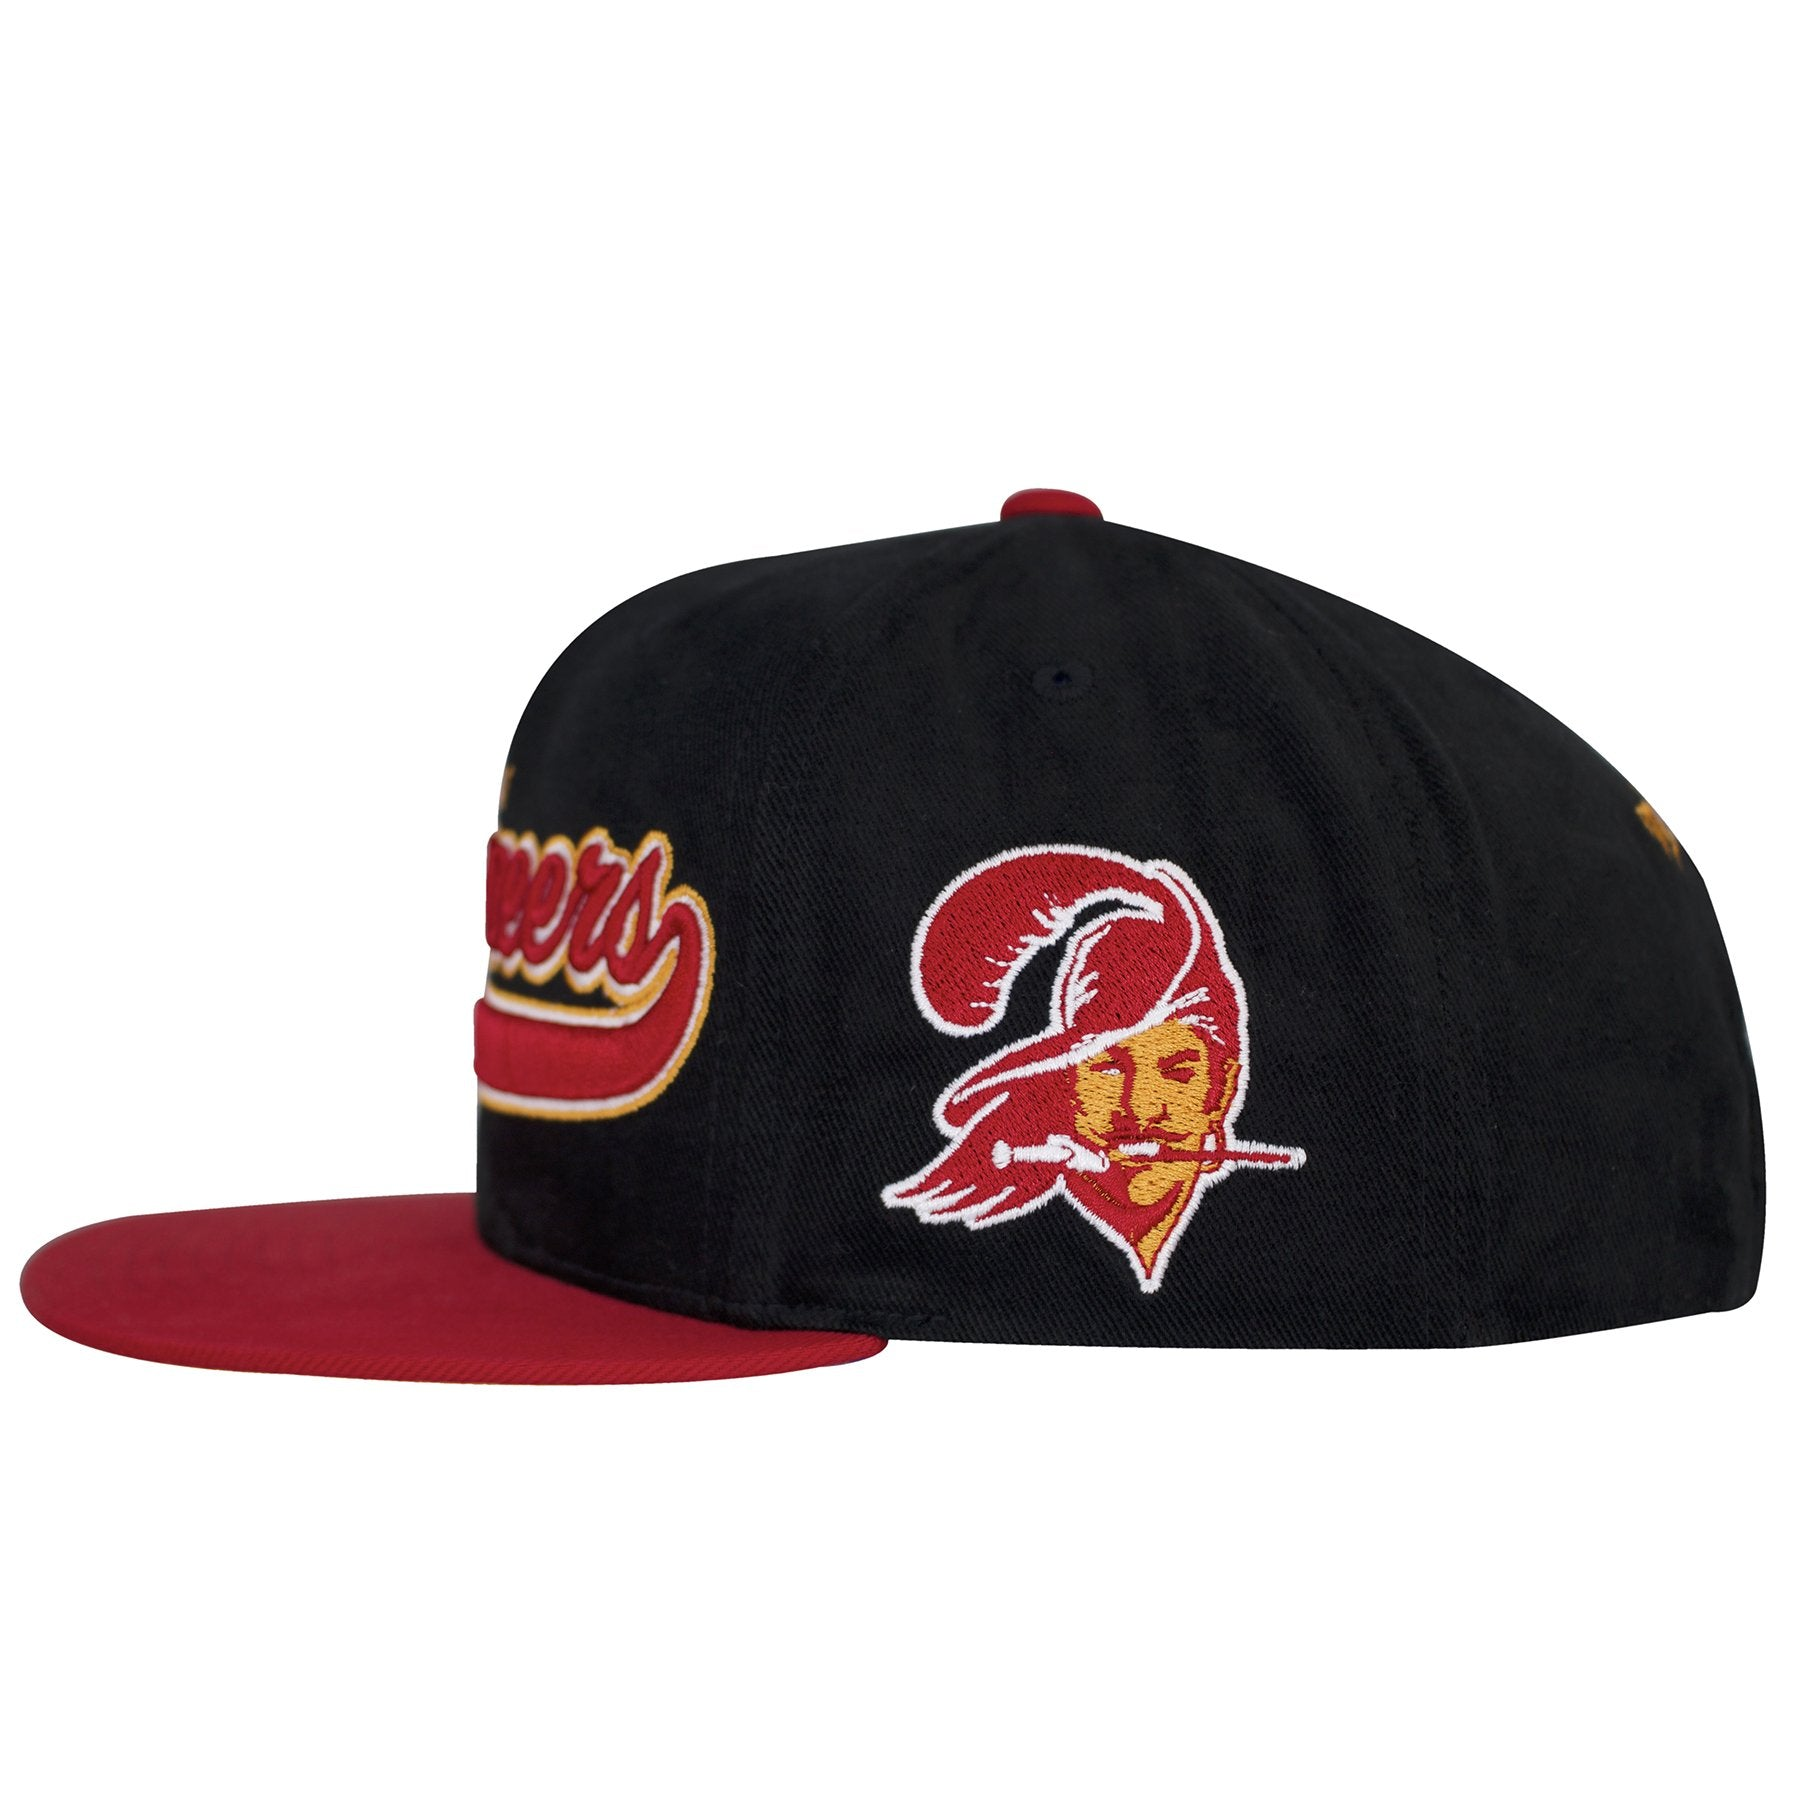 ... on the left side of the tampa bay buccaneers retro snapback hat is the vintage  buccaneers ... 76f3c41e0eb6